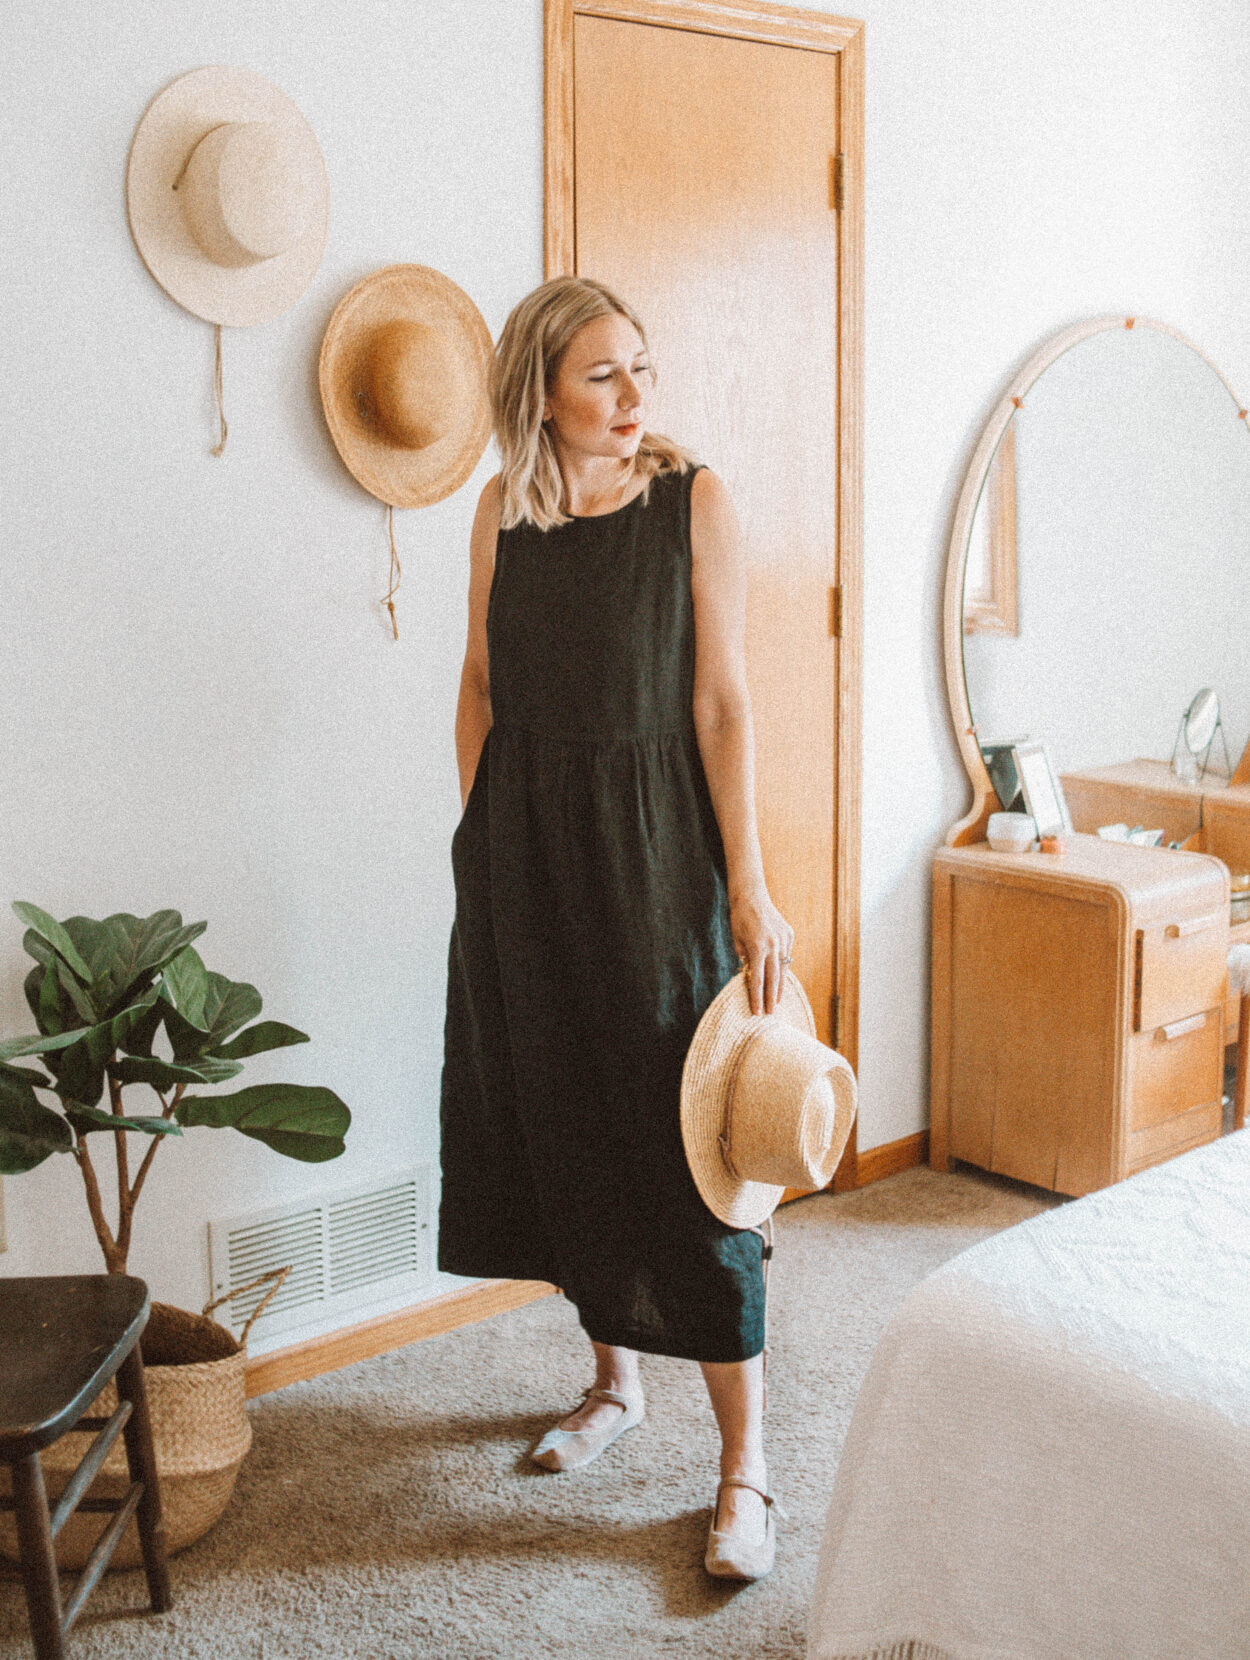 A Week of Outfits: Casual, Stylish Outfits for Real Life, pyne and smith model no. 6 in black linen